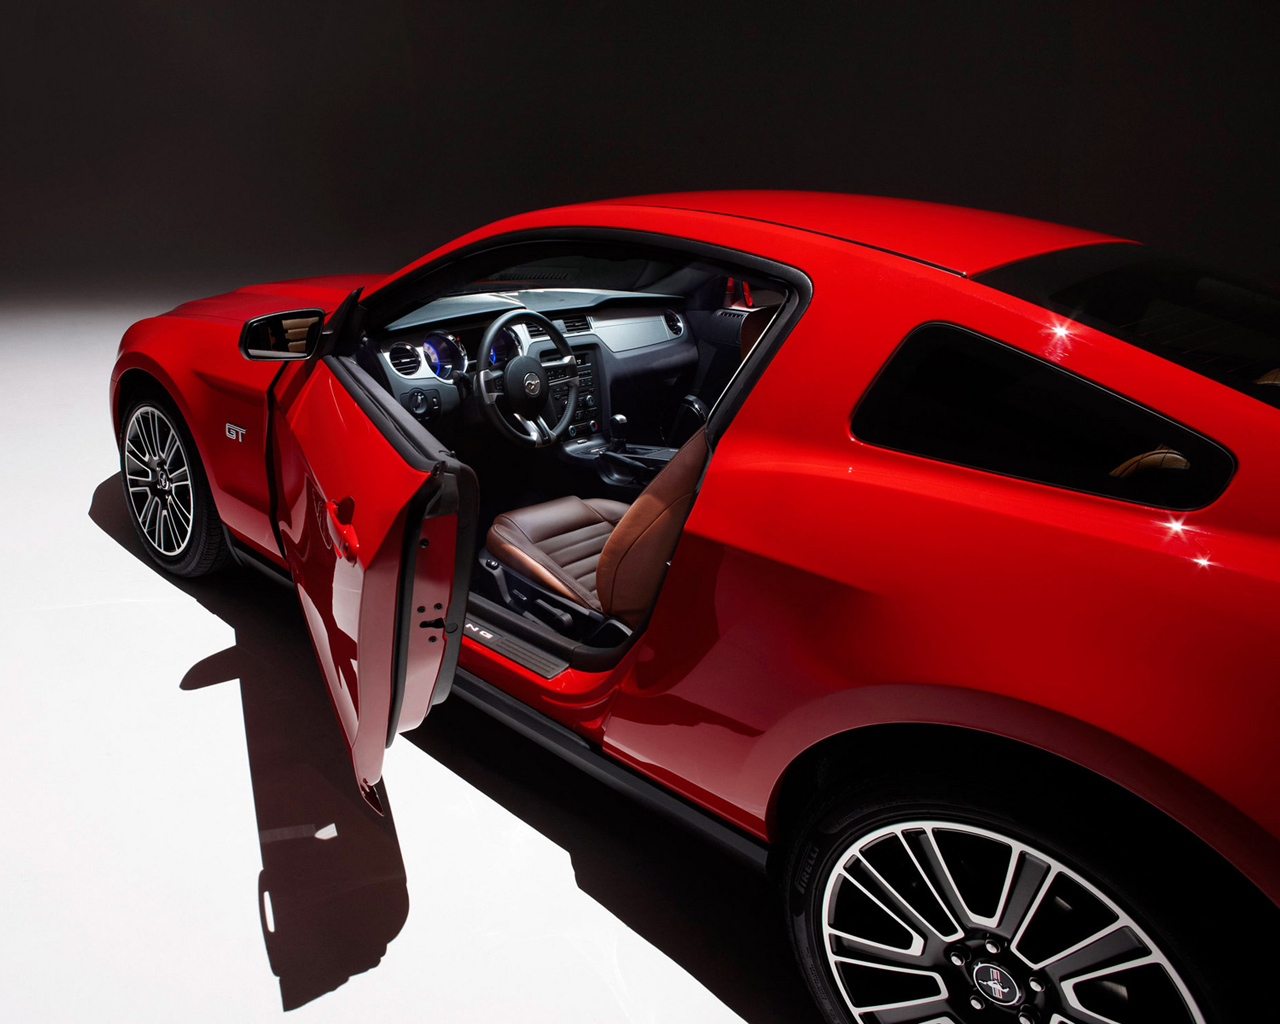 The 2010 Mustang